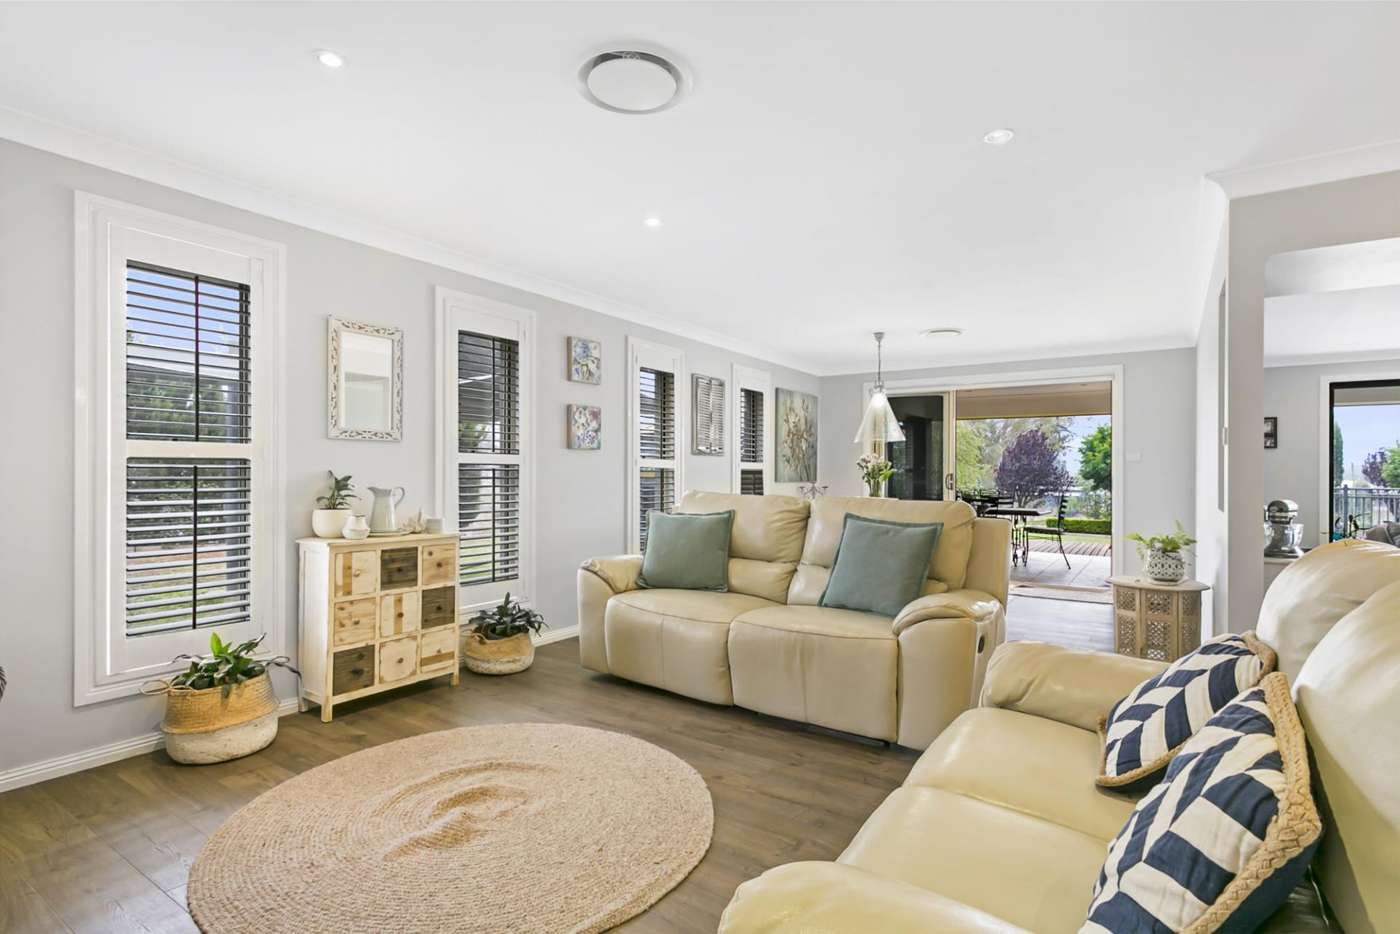 Seventh view of Homely house listing, 24 Wyndham Close, Daruka NSW 2340